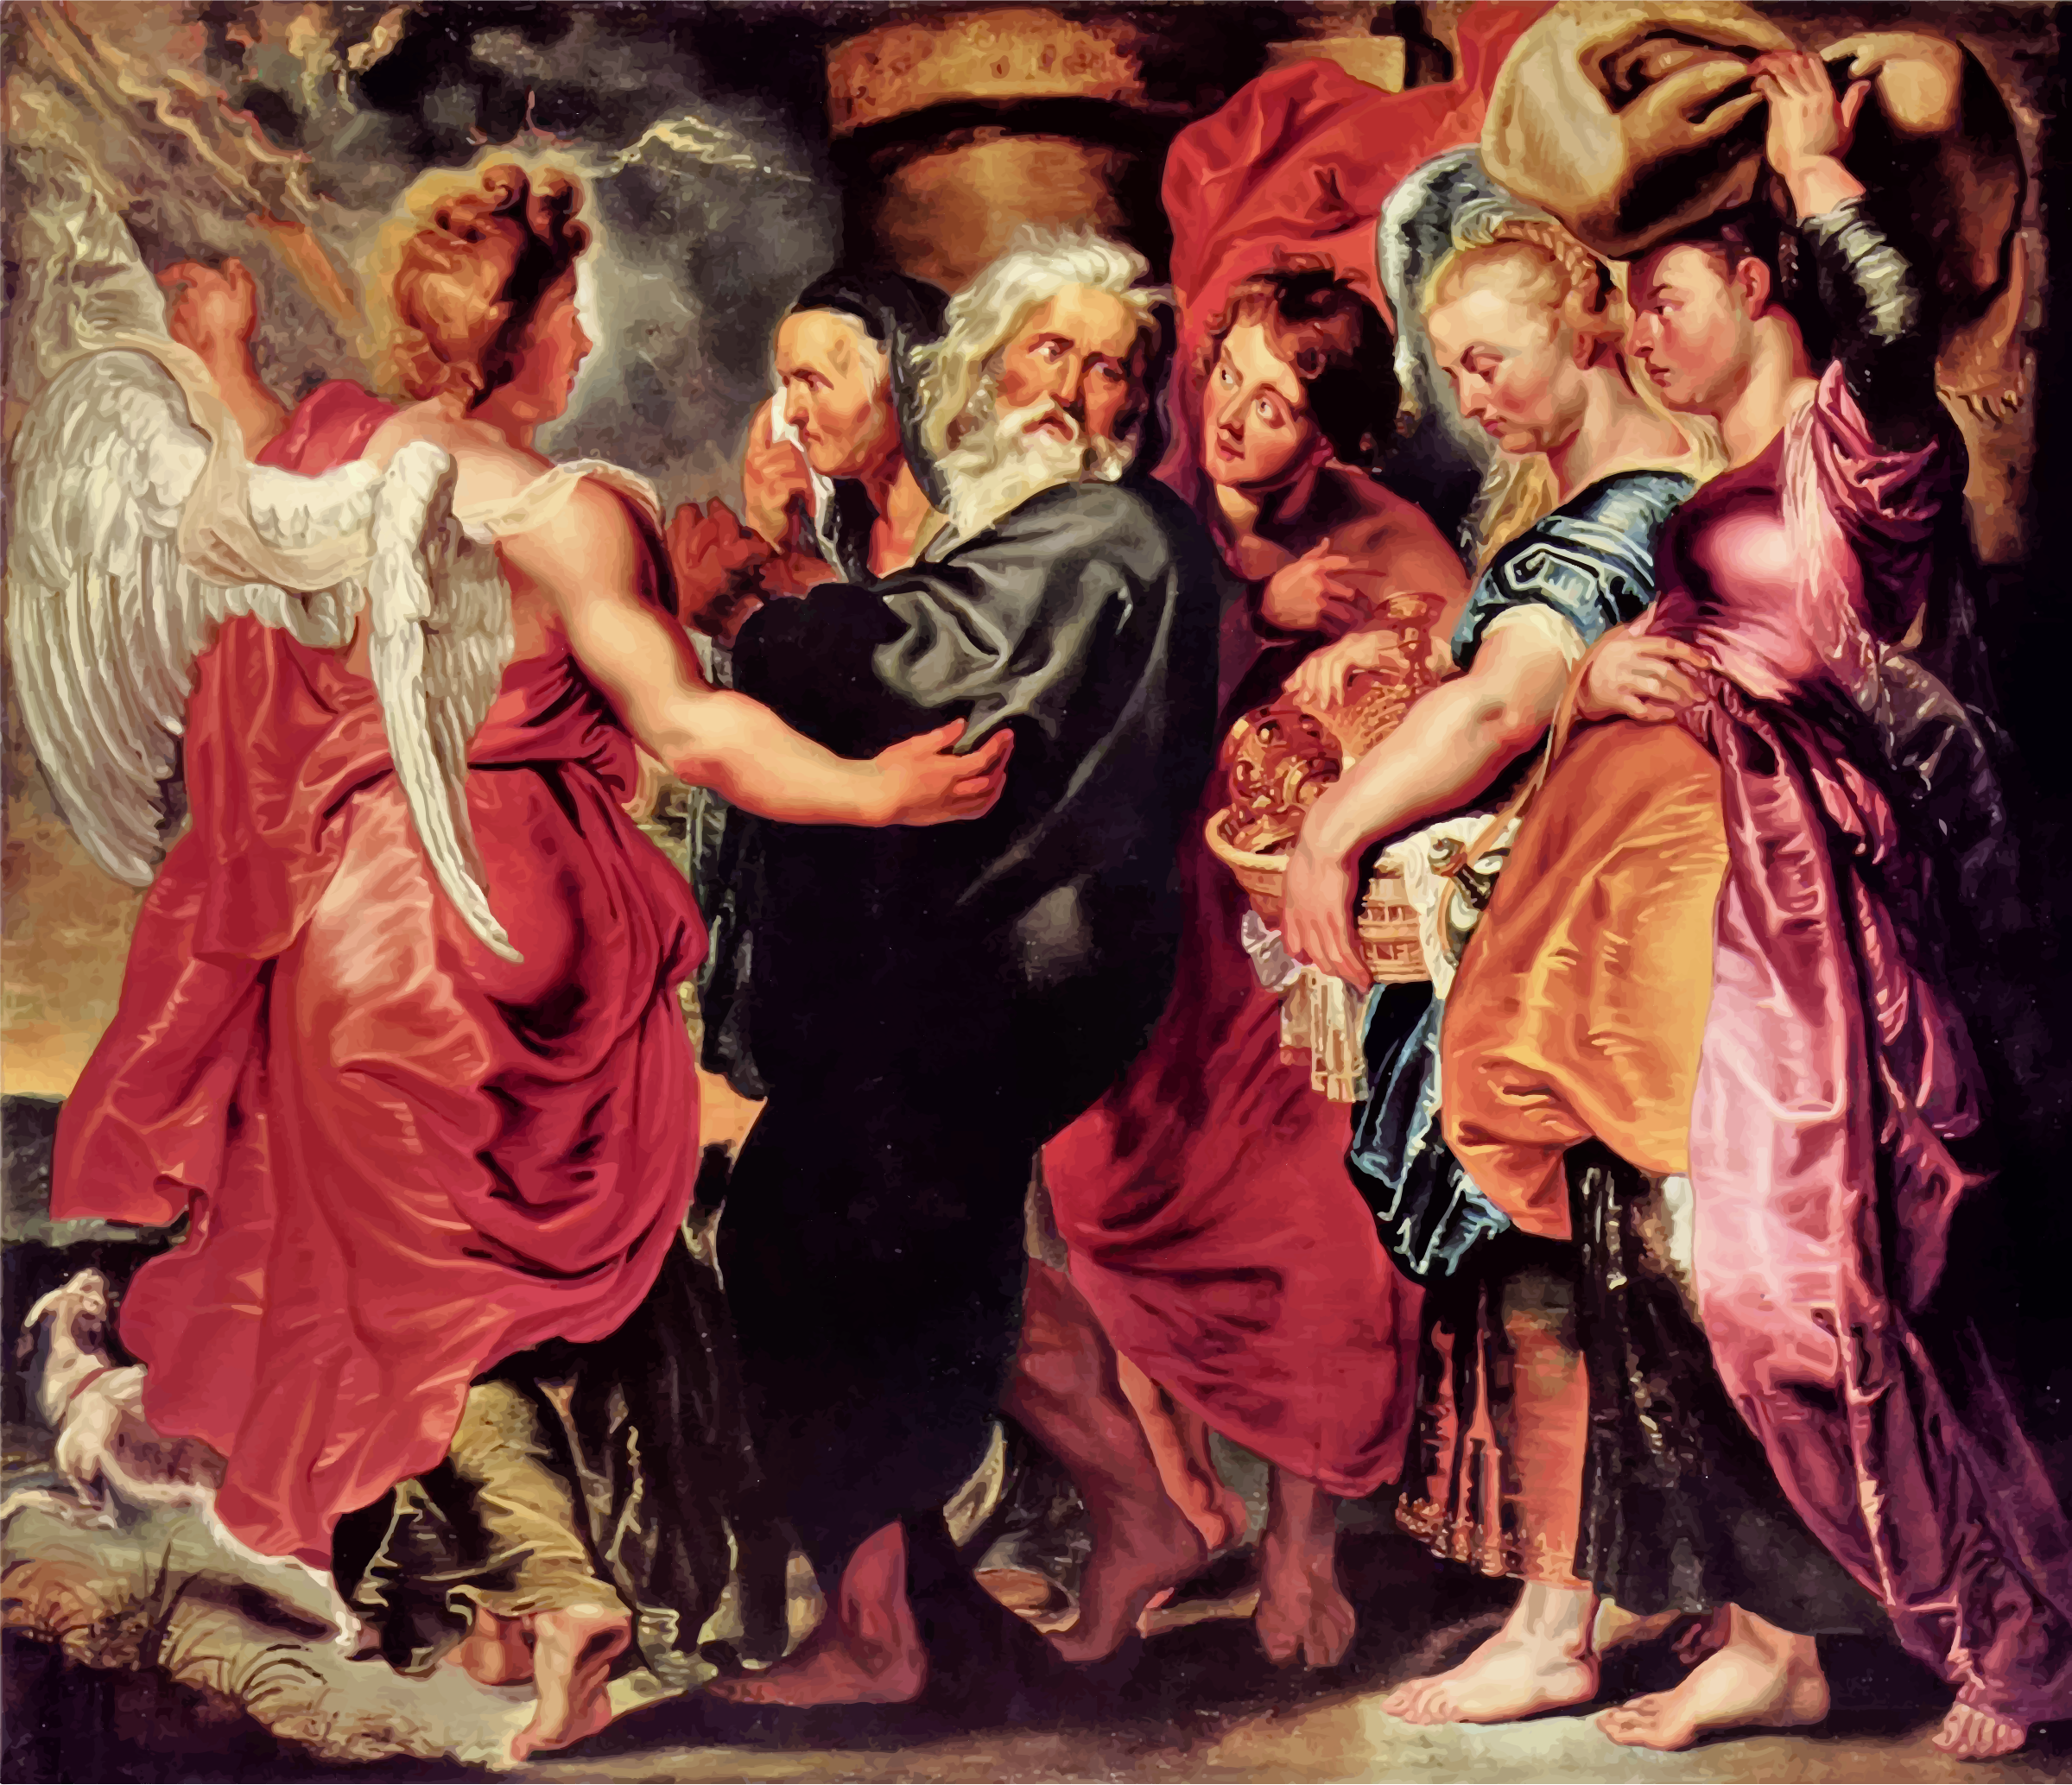 Lot Leaves Sodom with His Family By Peter Paul Rubens by GDJ